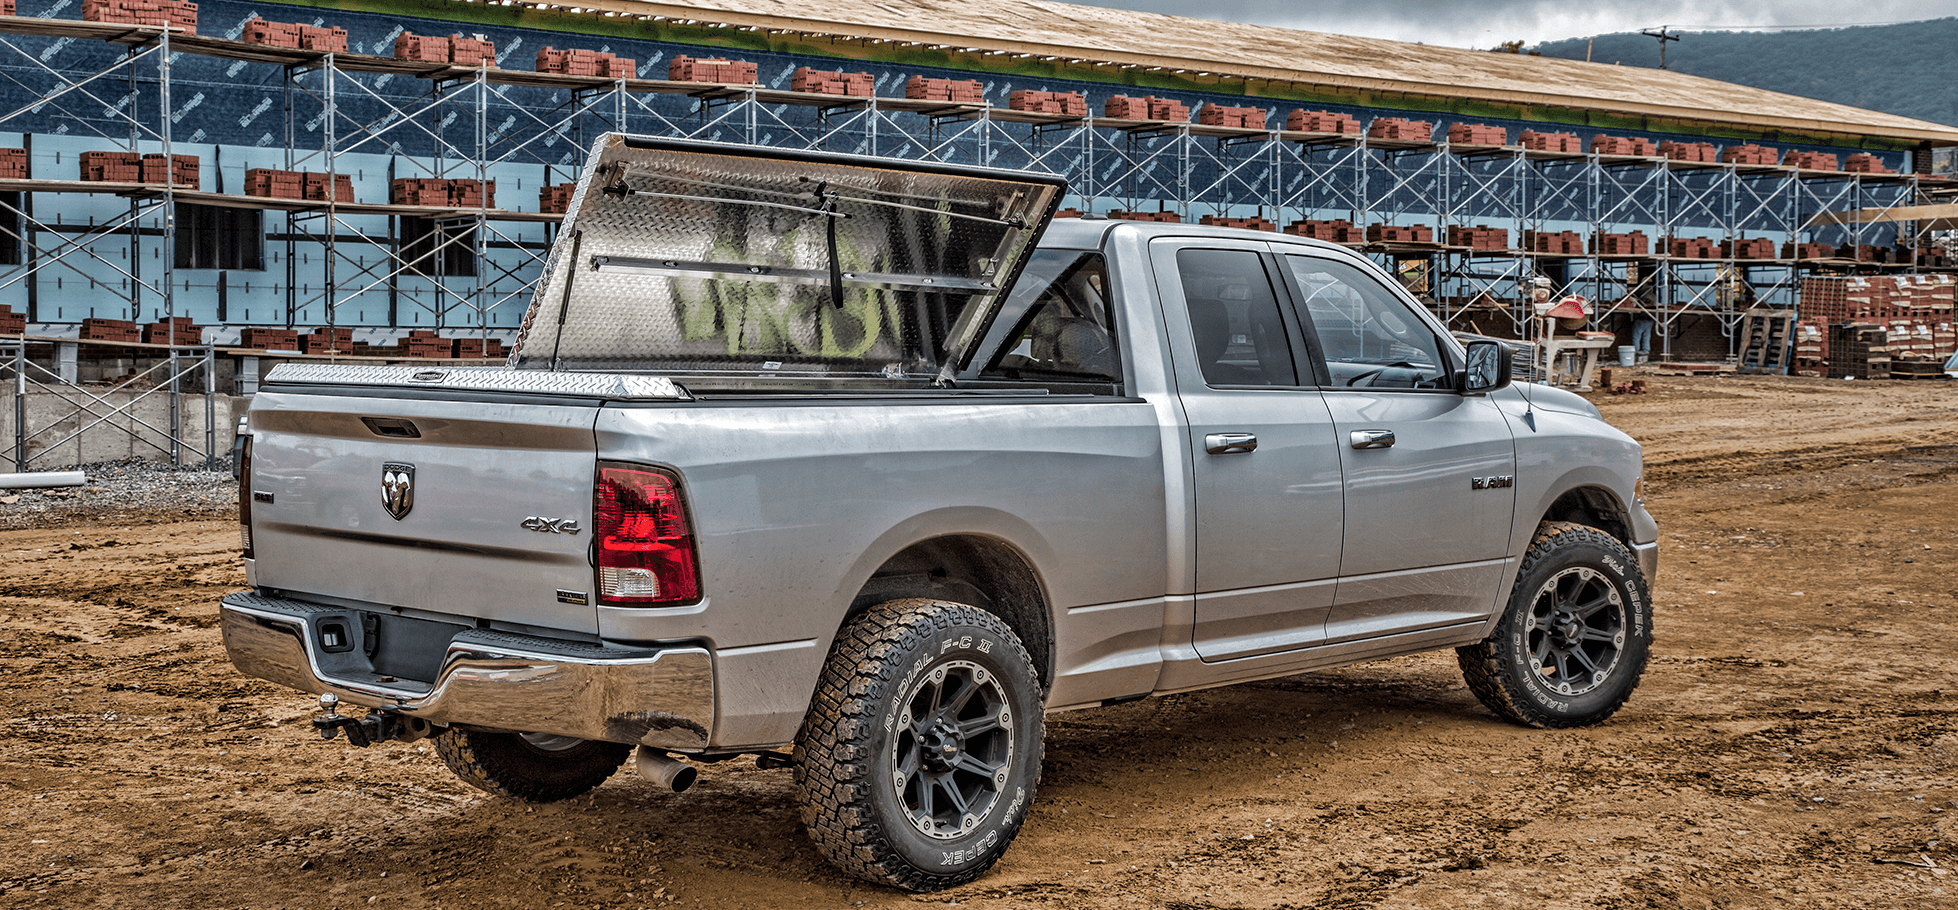 180 aluminum tonneau cover at construction site with one panel open